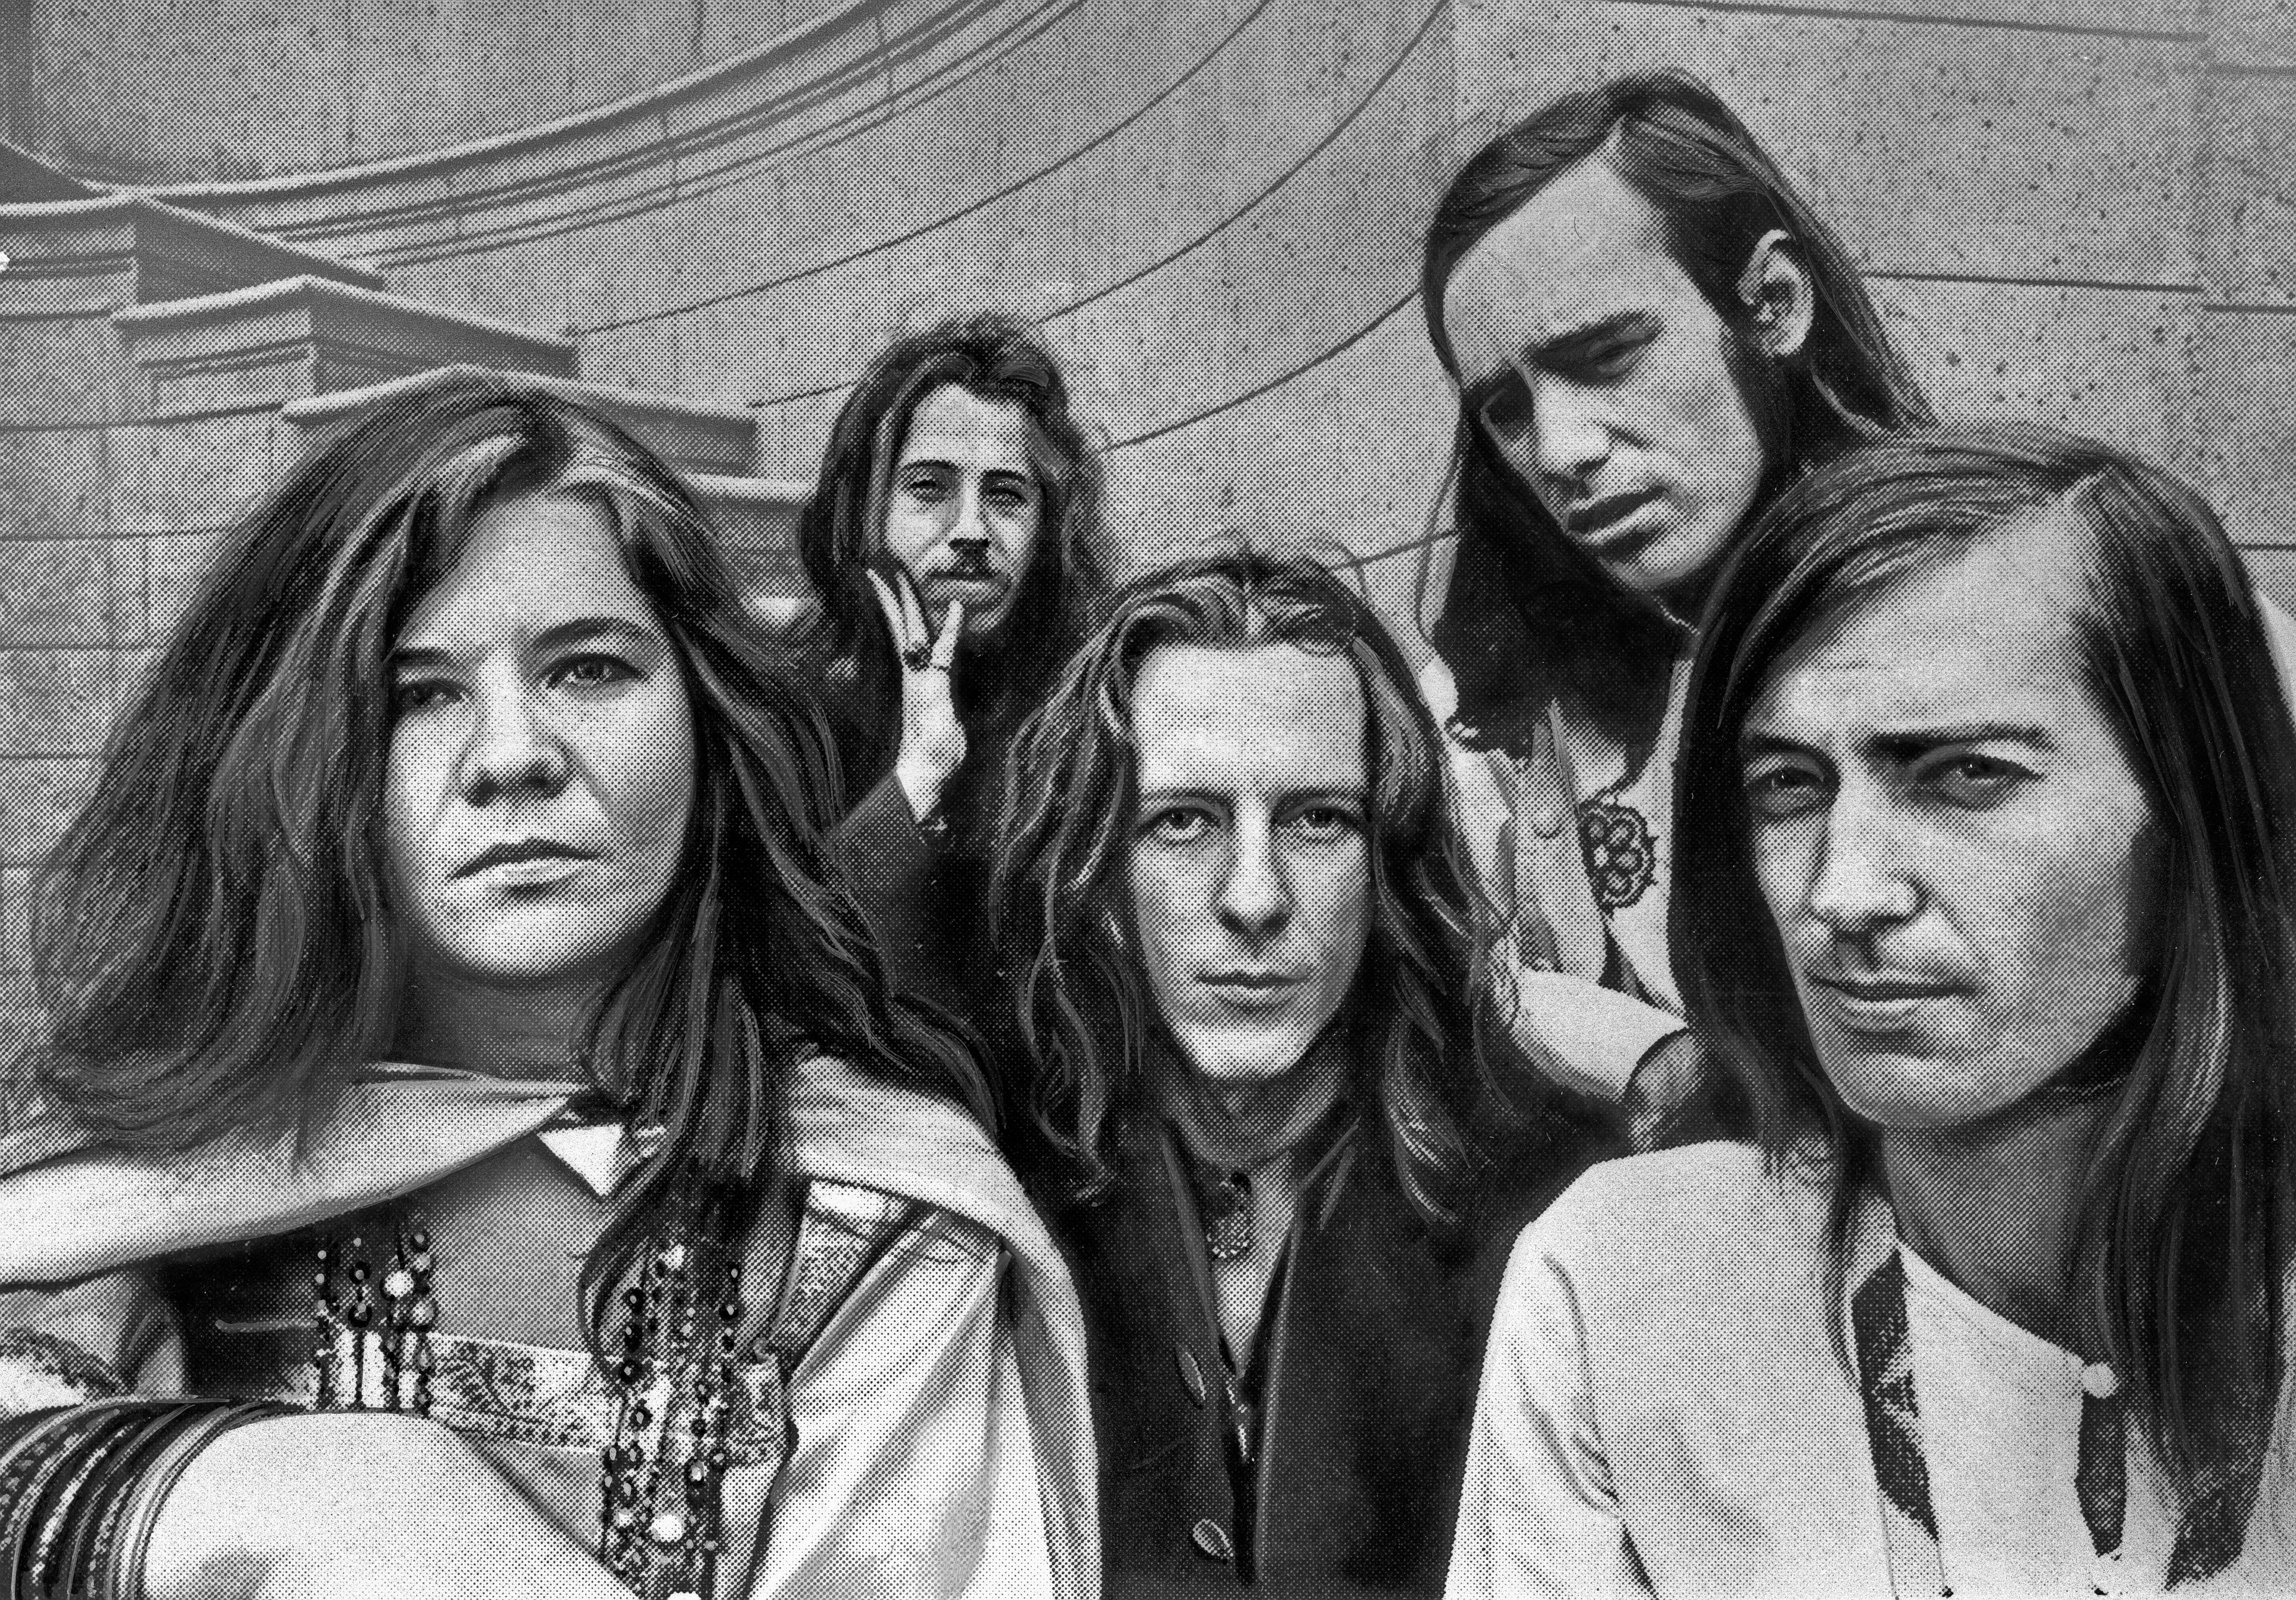 January 1, 1968 - Die amerikanische Sängerin Janis Joplin mit der Band Big Brother and the Holding Company, USA Ende 1960er Jahre. American singer Janis Joplin witth the band Big Brother and the Holding Company, USA end 1960s. Copyright: Roba/Roba-Archiv UnitedArchives03393 (Credit Image: © Imago via ZUMA Press)